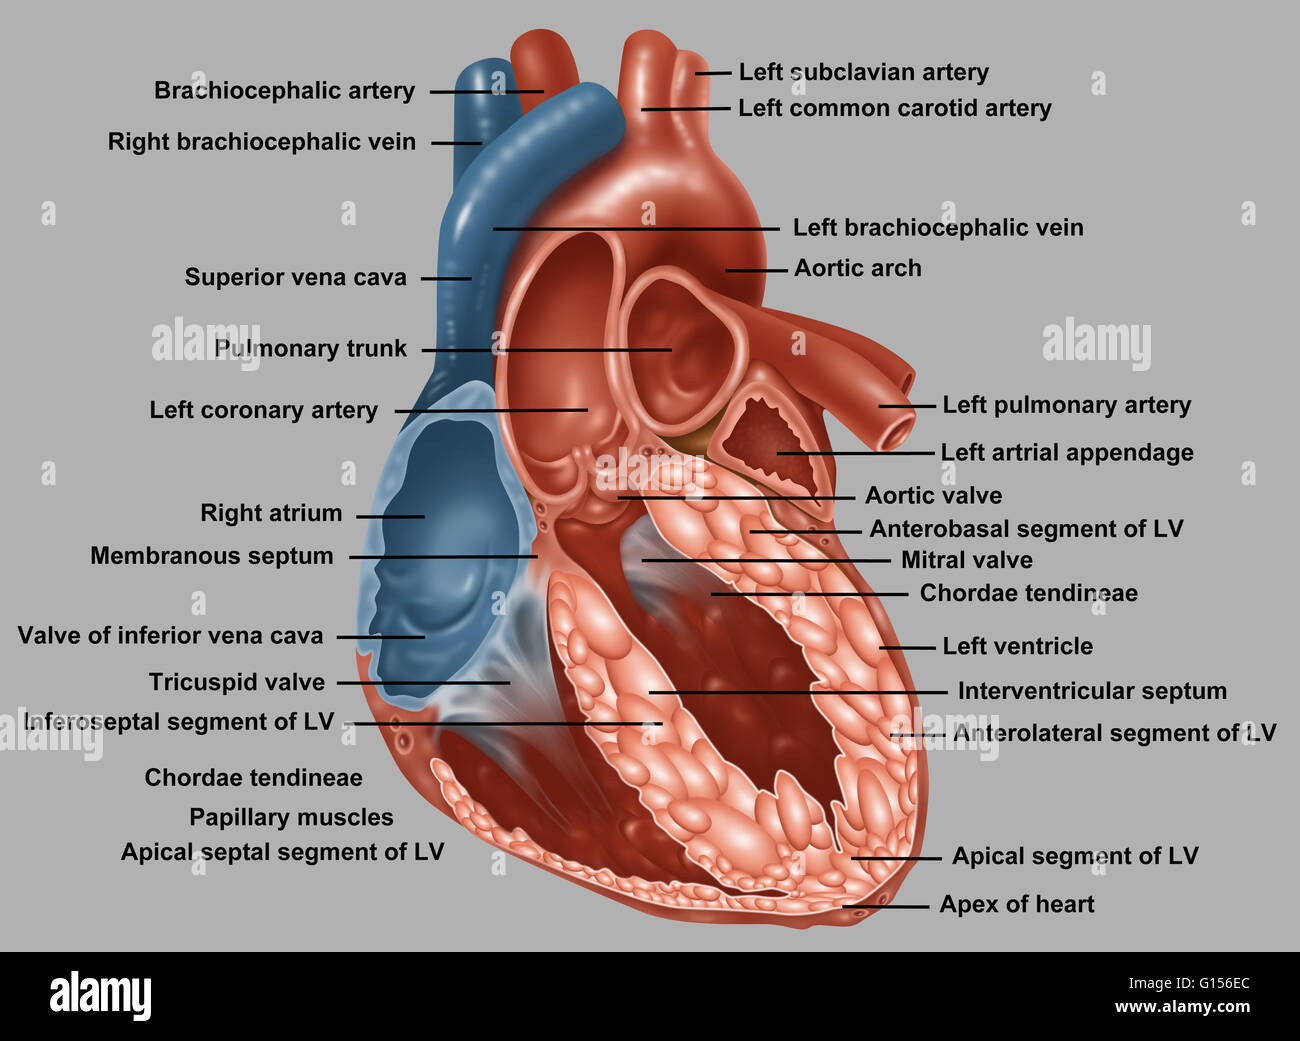 Anatomy of a normal human heart with everything labeled Stock Photo ...